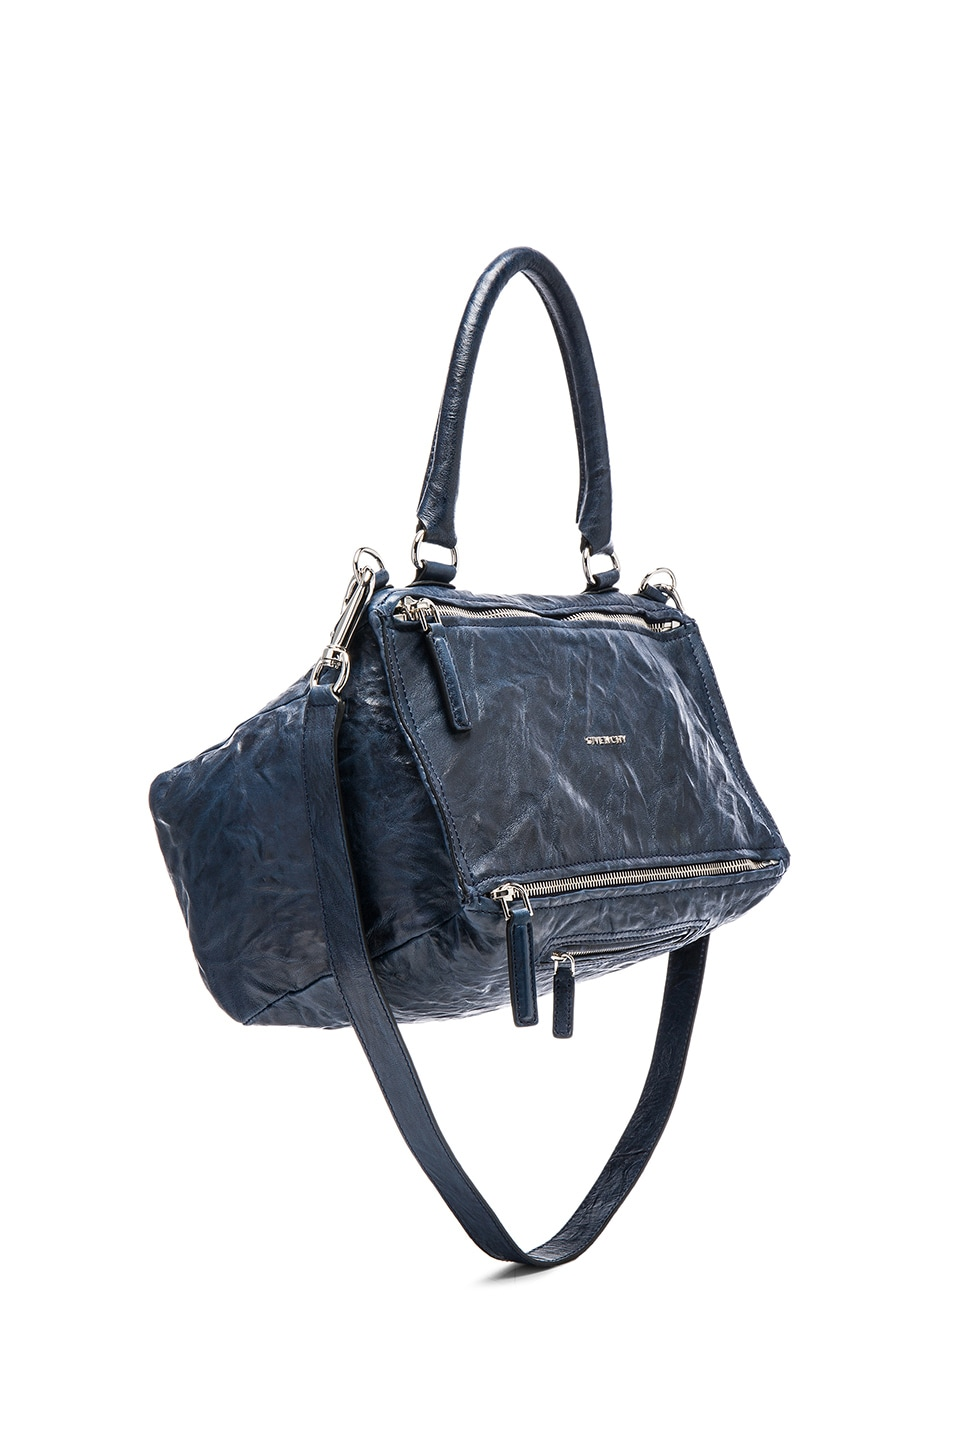 90783548c0d Image 1 of Givenchy Medium Old Pepe Pandora in Night Blue